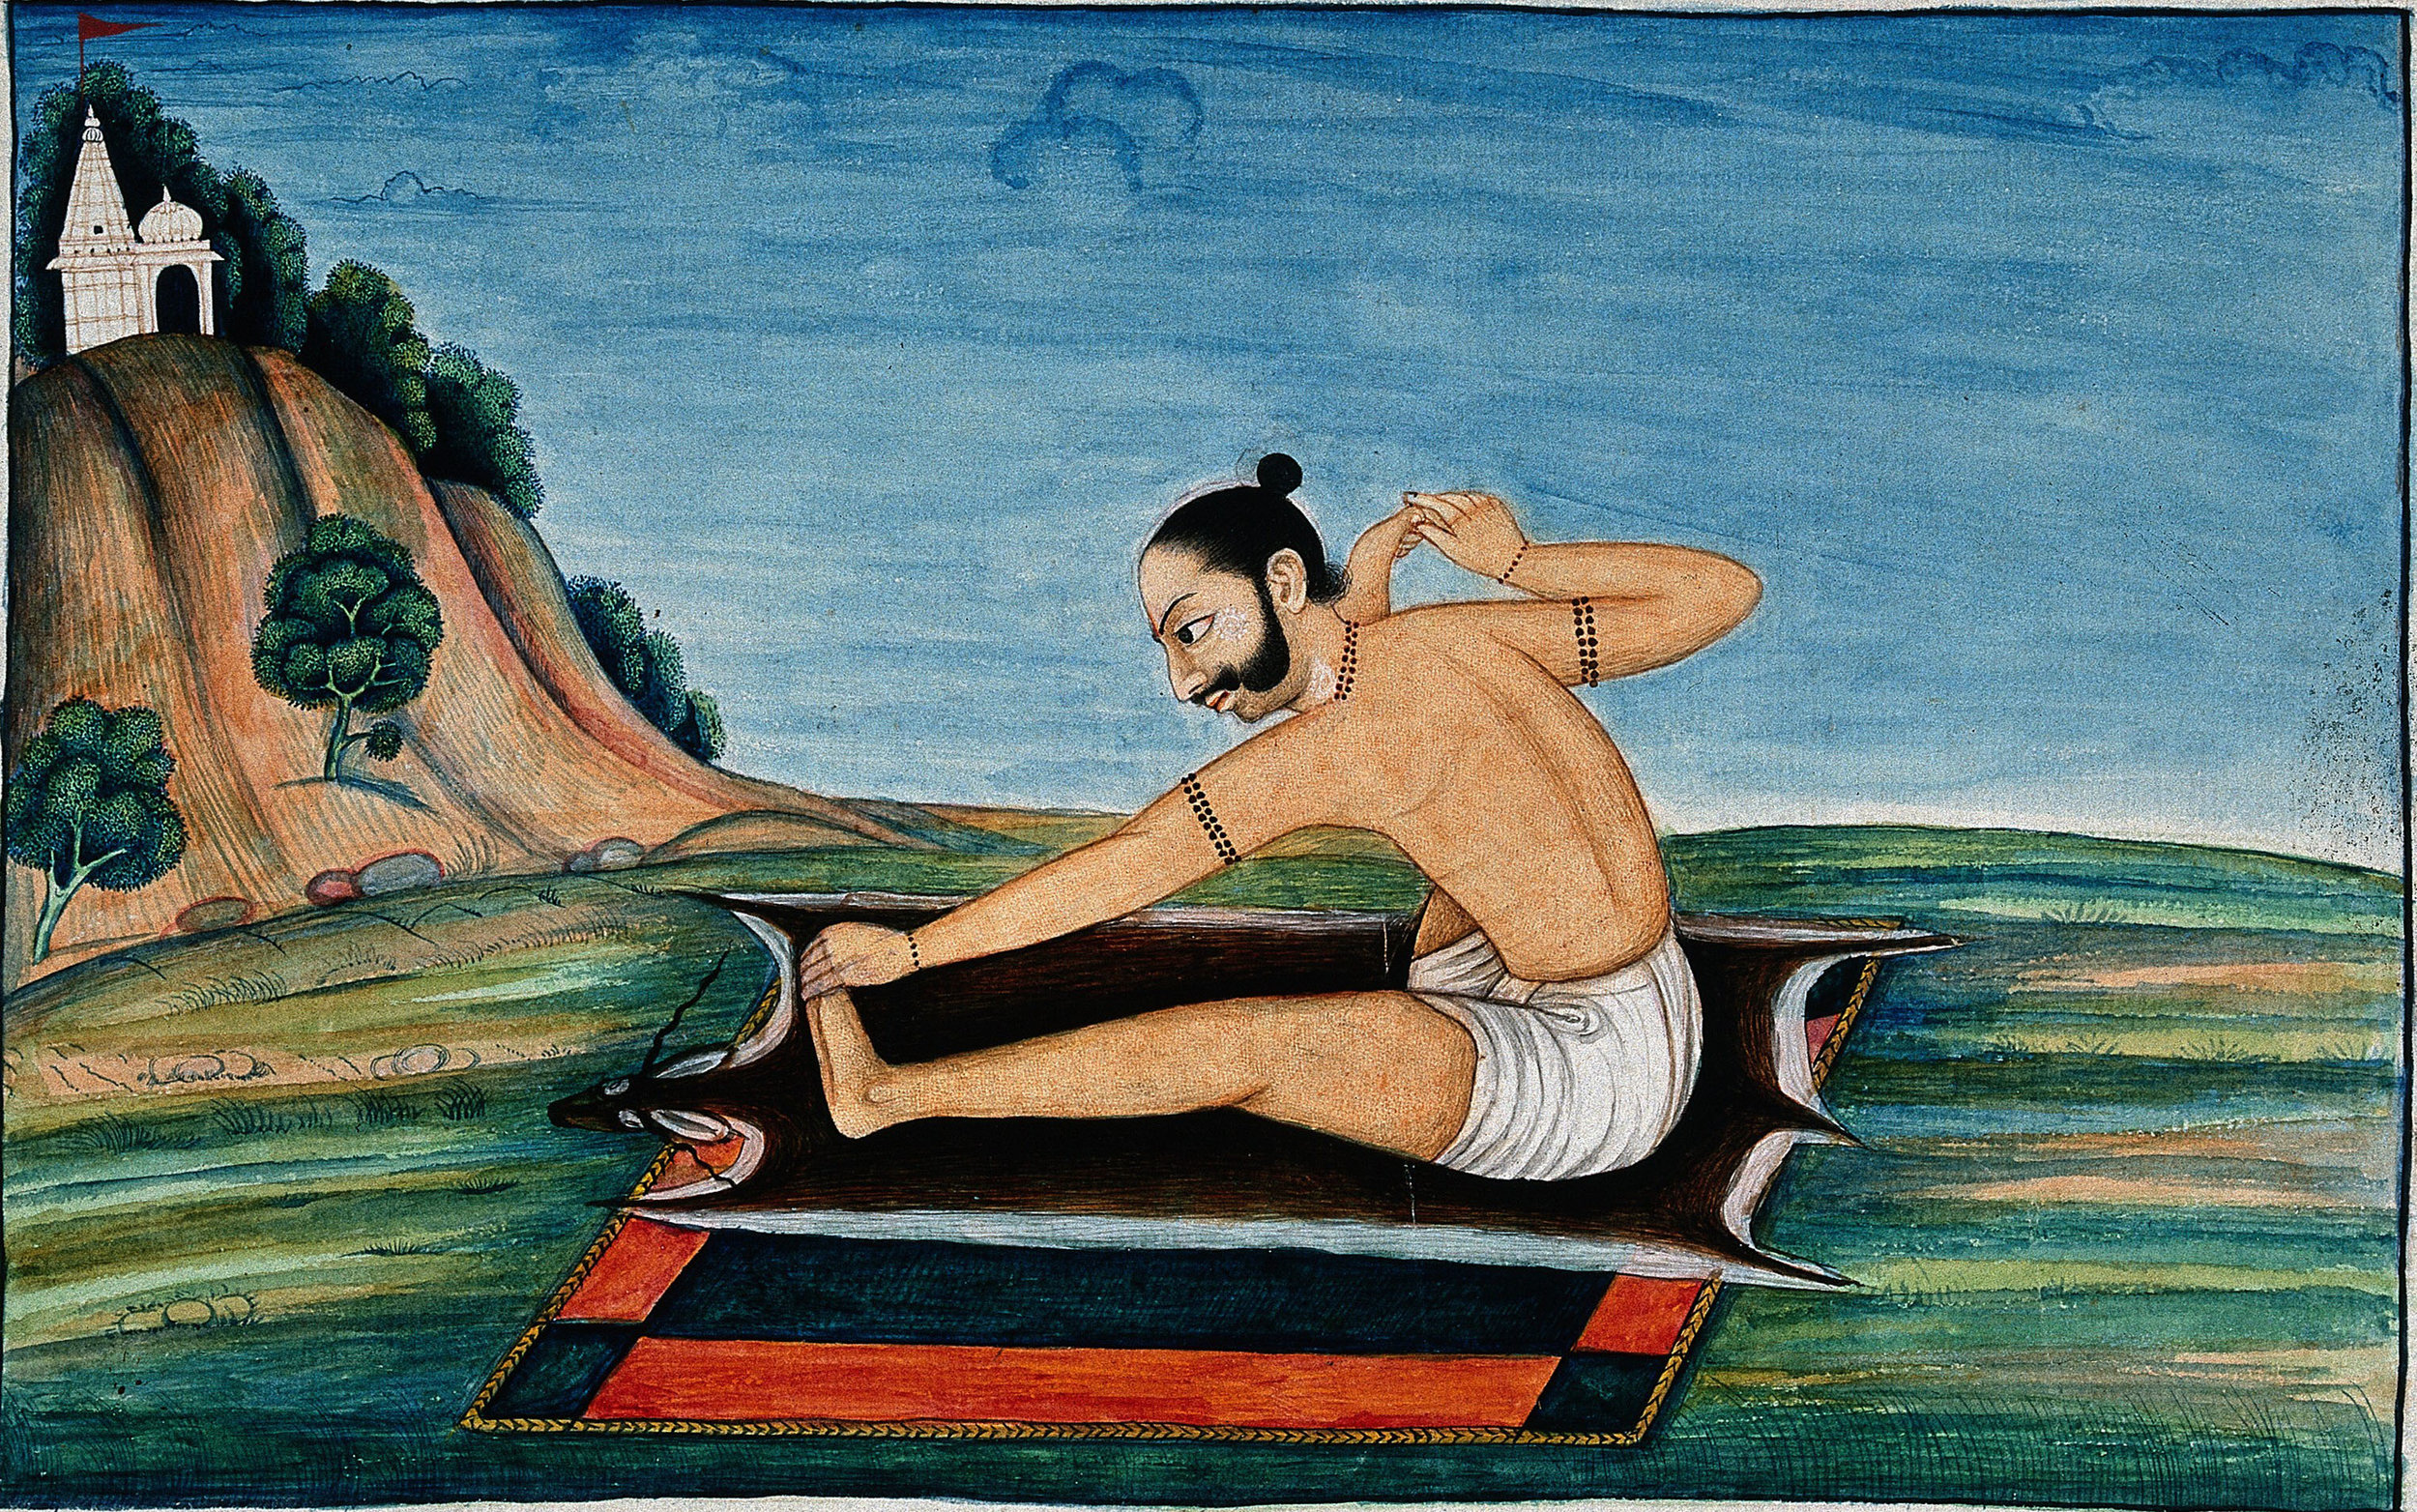 An Indian person in a yogic posture, gouache painting, 19th Century. Wellcome Library, London.